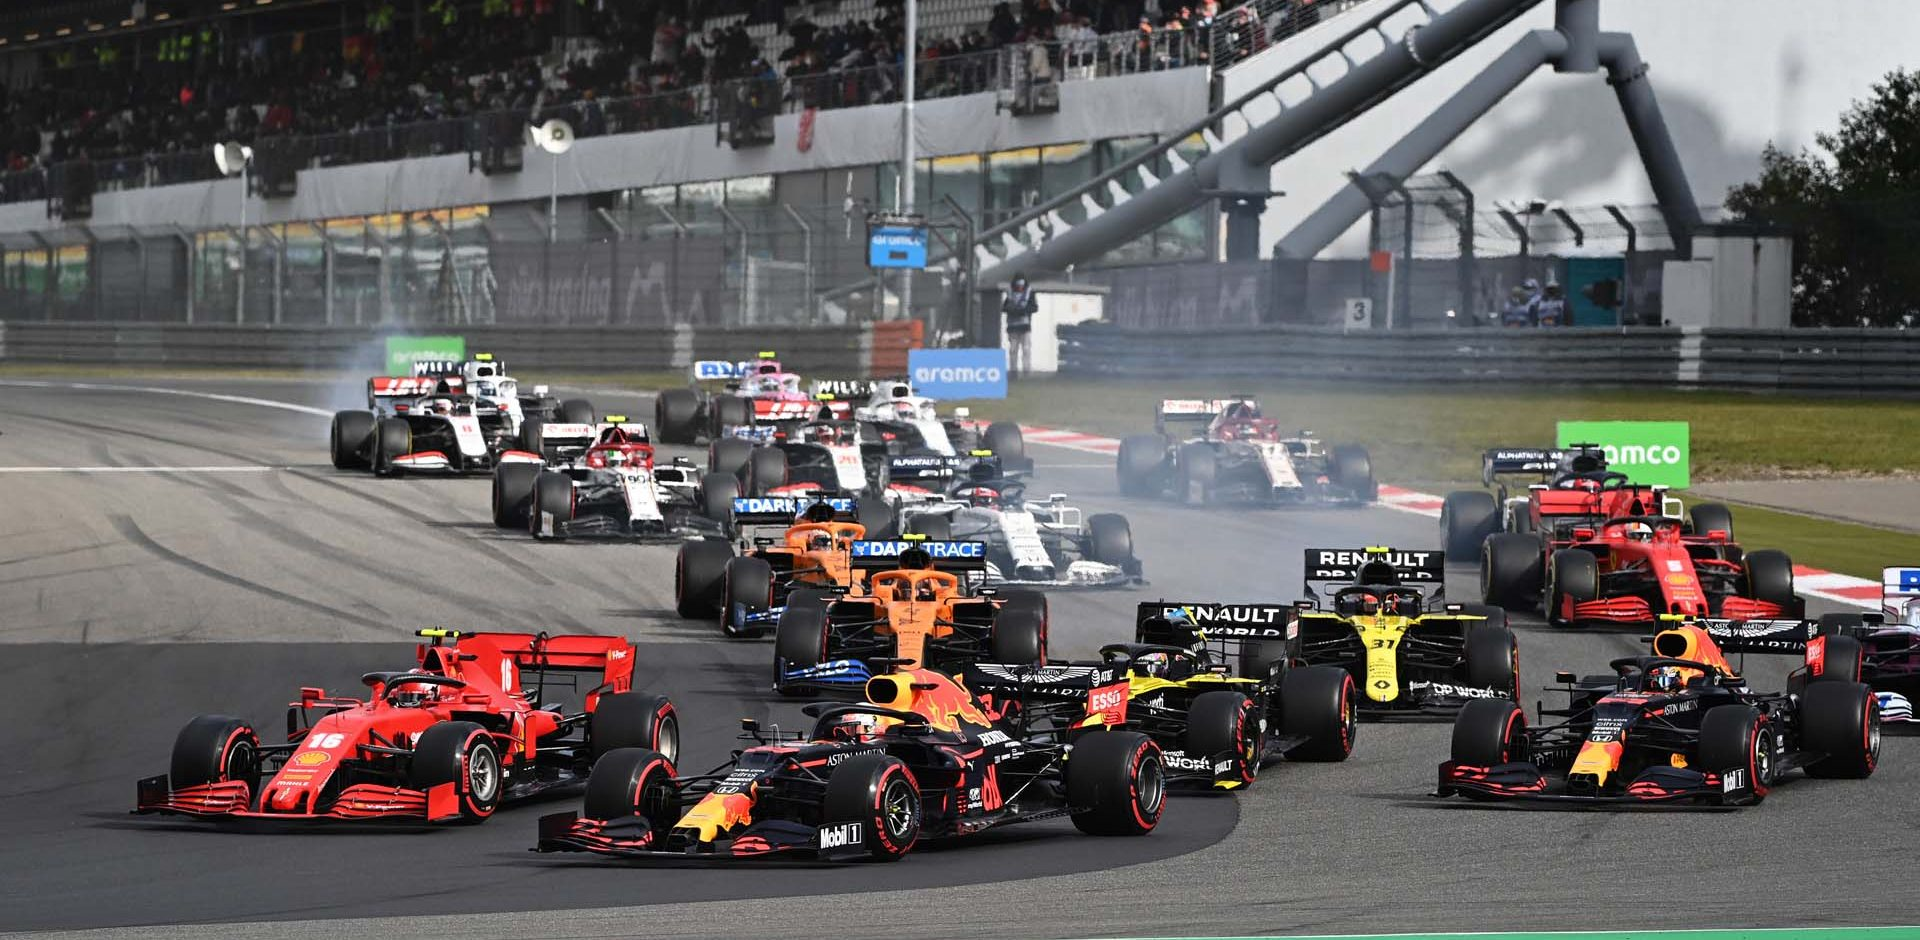 NUERBURG, GERMANY - OCTOBER 11: Max Verstappen of the Netherlands driving the (33) Aston Martin Red Bull Racing RB16 battles for position with Charles Leclerc of Monaco driving the (16) Scuderia Ferrari SF1000 at the start of the race during the F1 Eifel Grand Prix at Nuerburgring on October 11, 2020 in Nuerburg, Germany. (Photo by Ina Fassbender - Pool/Getty Images)